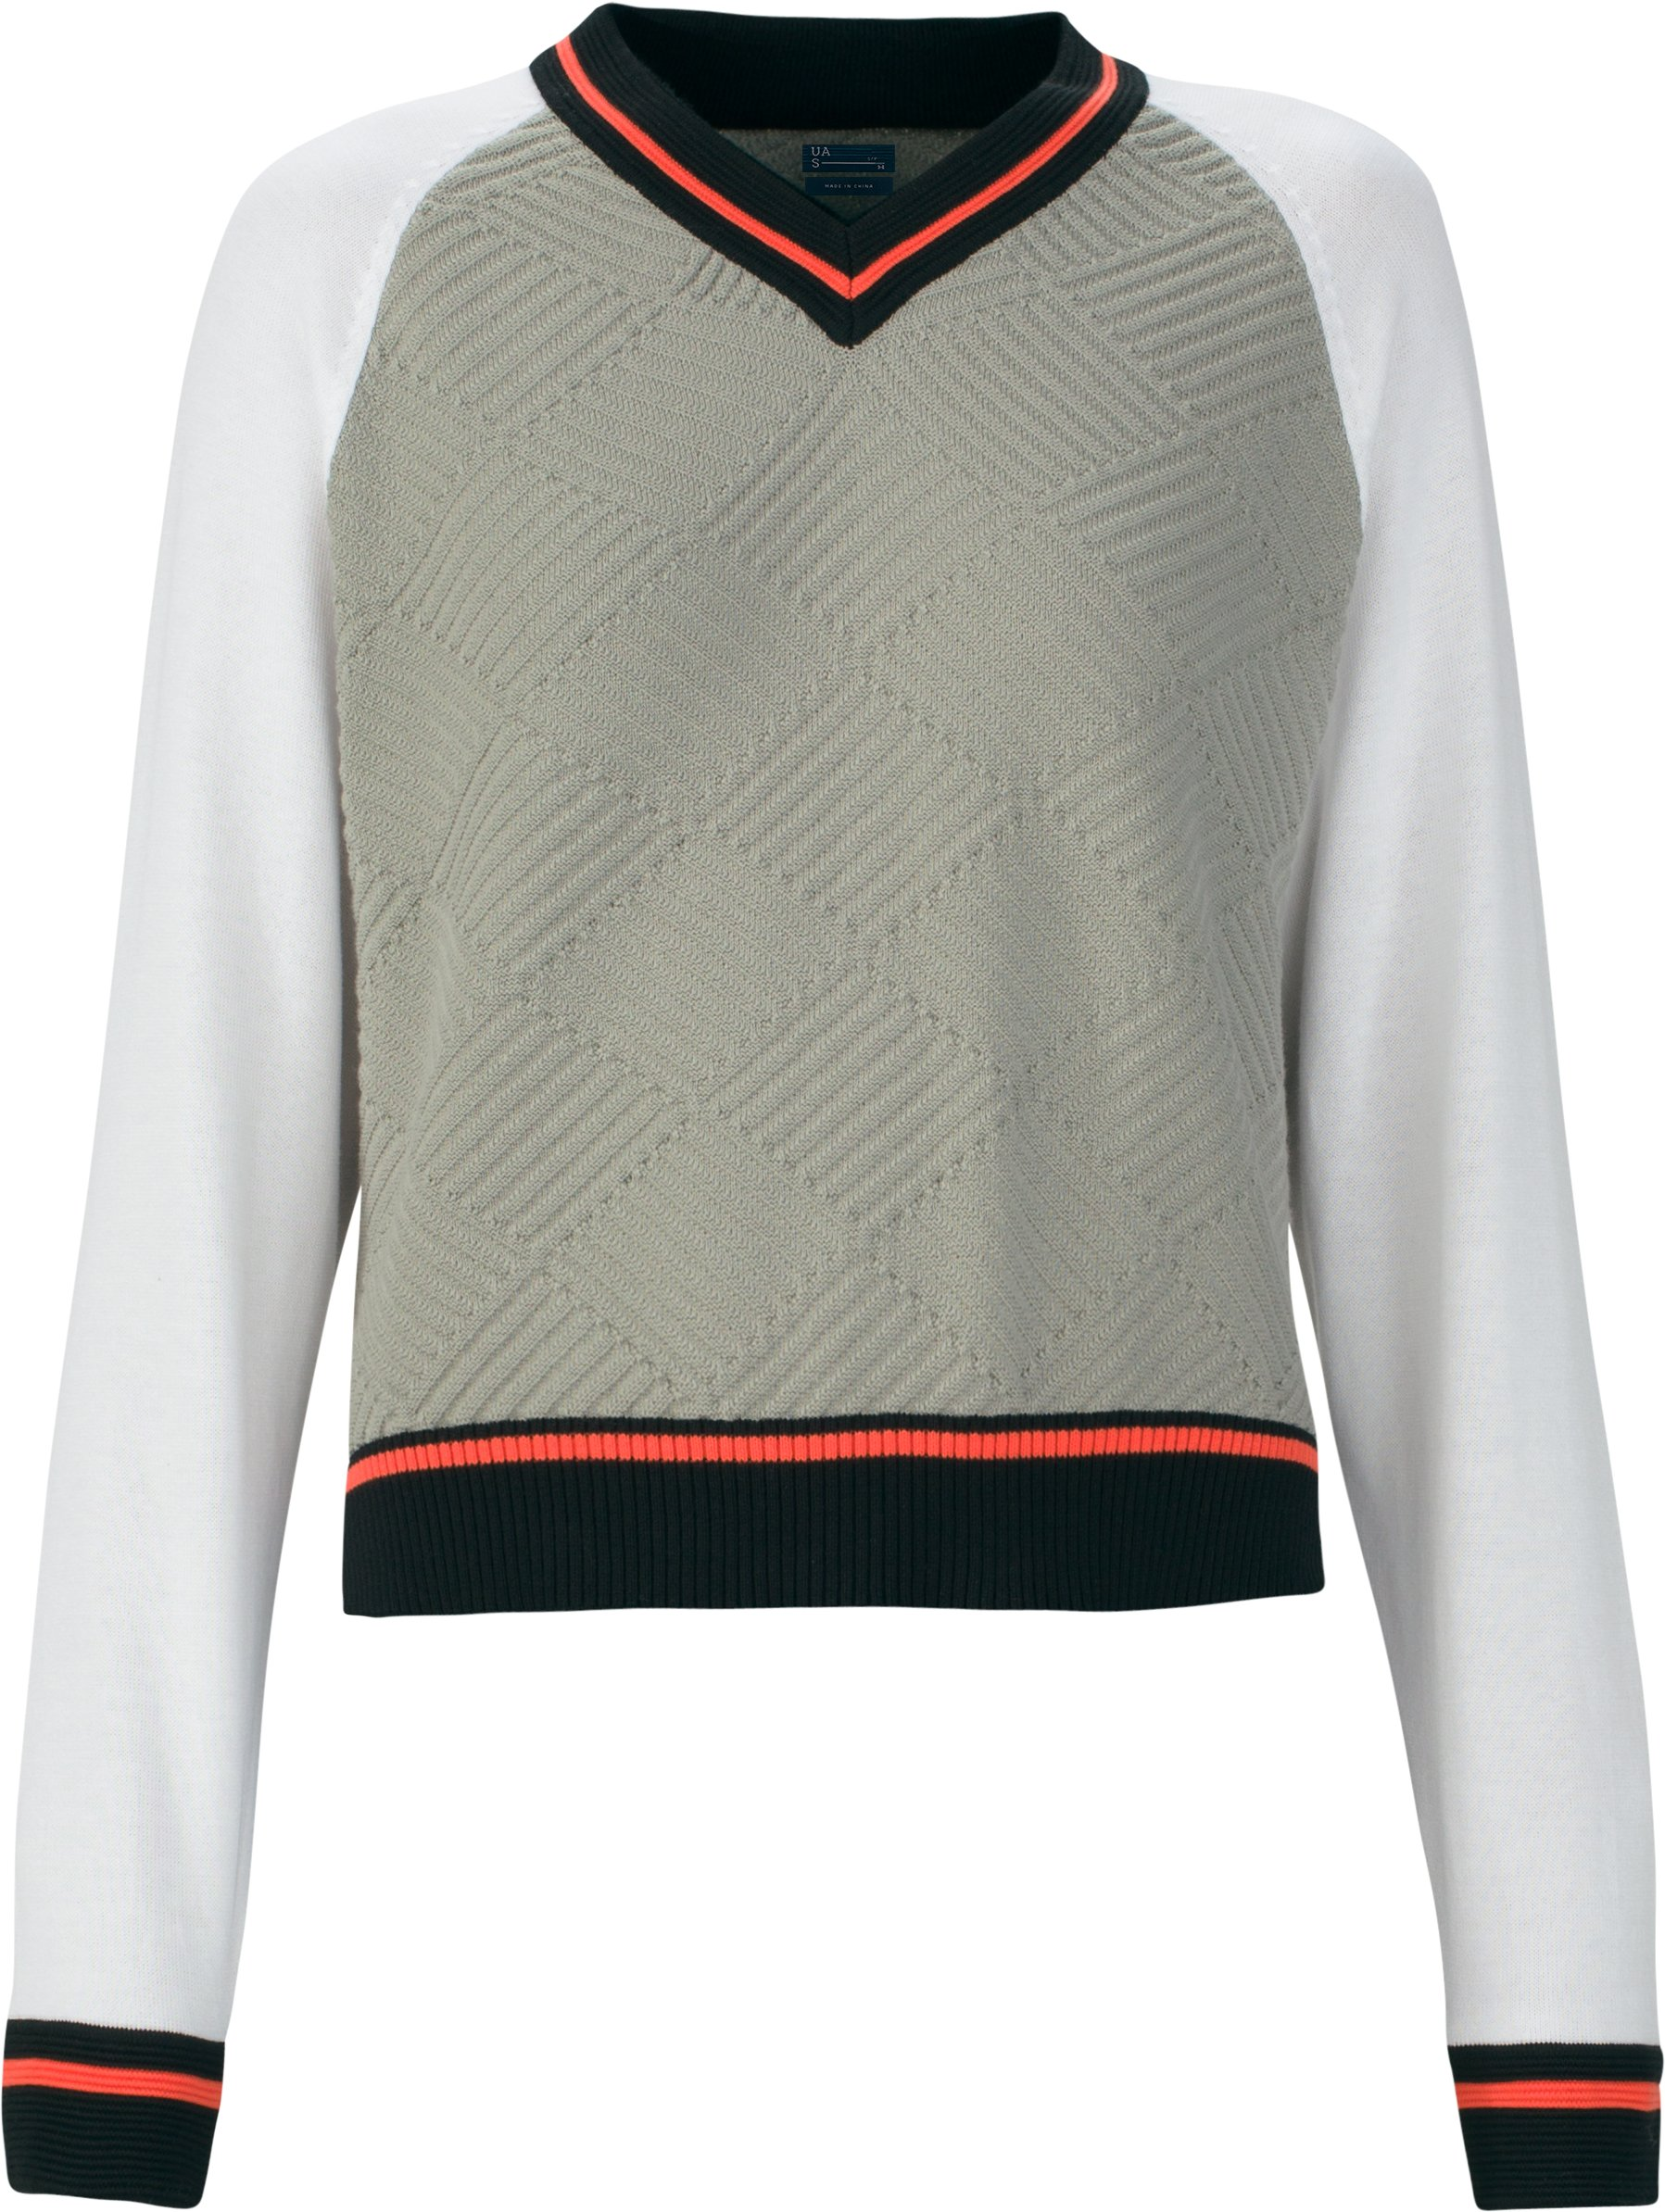 Women's UAS Fieldhouse V-Neck Knit Sweater, Gray, undefined